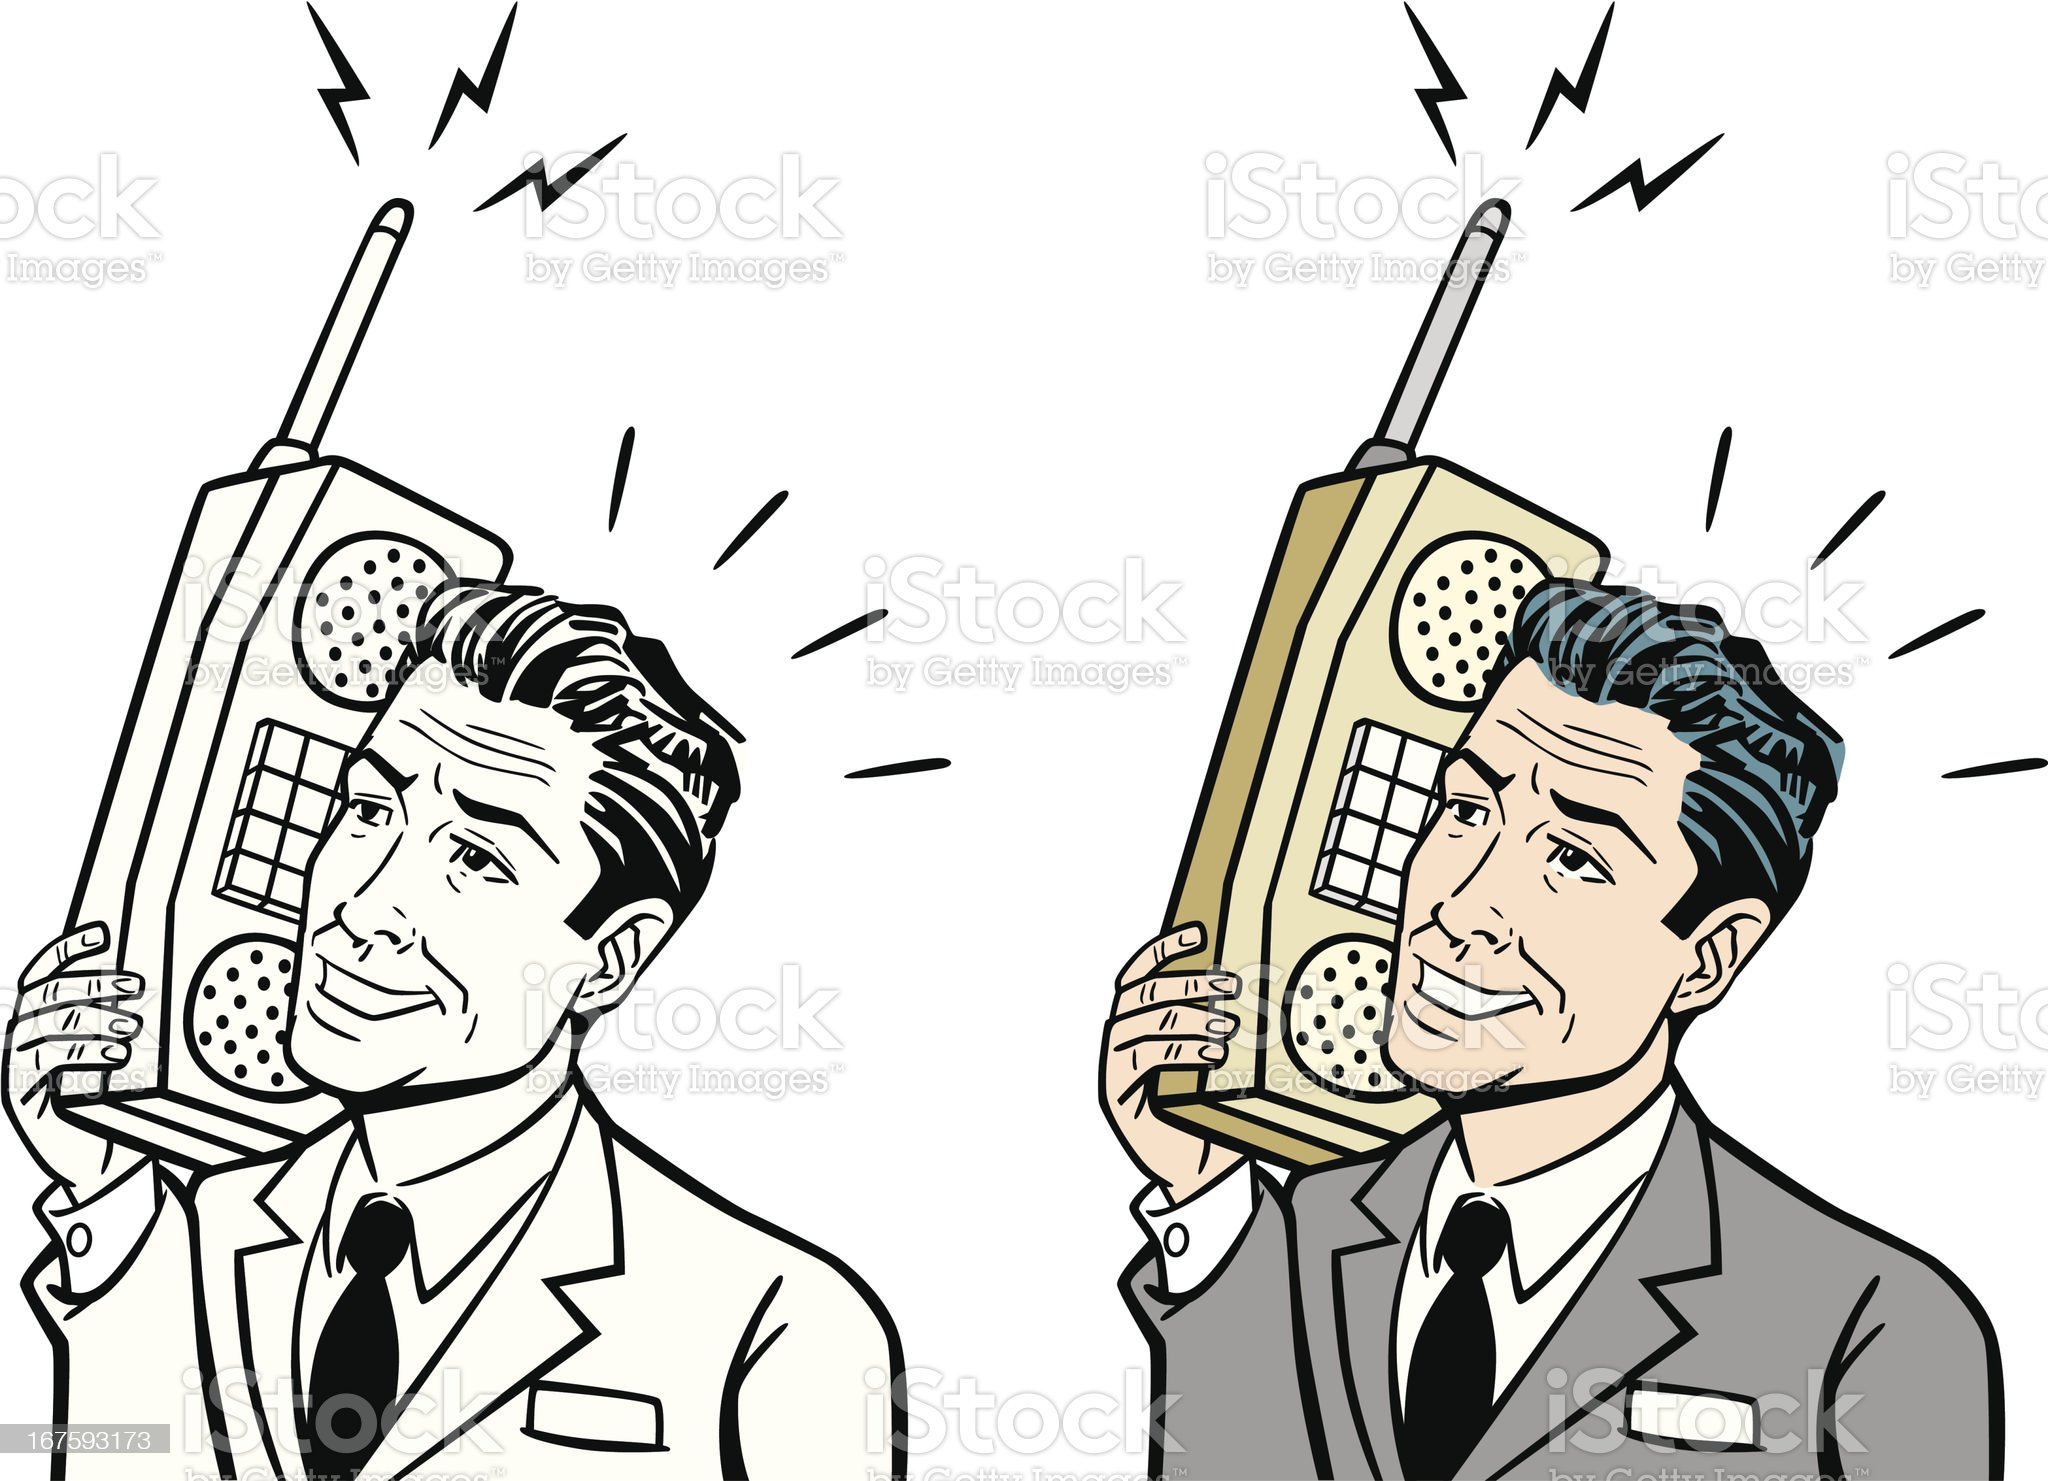 Retro Business Man With Early Cell Phone royalty-free stock vector art